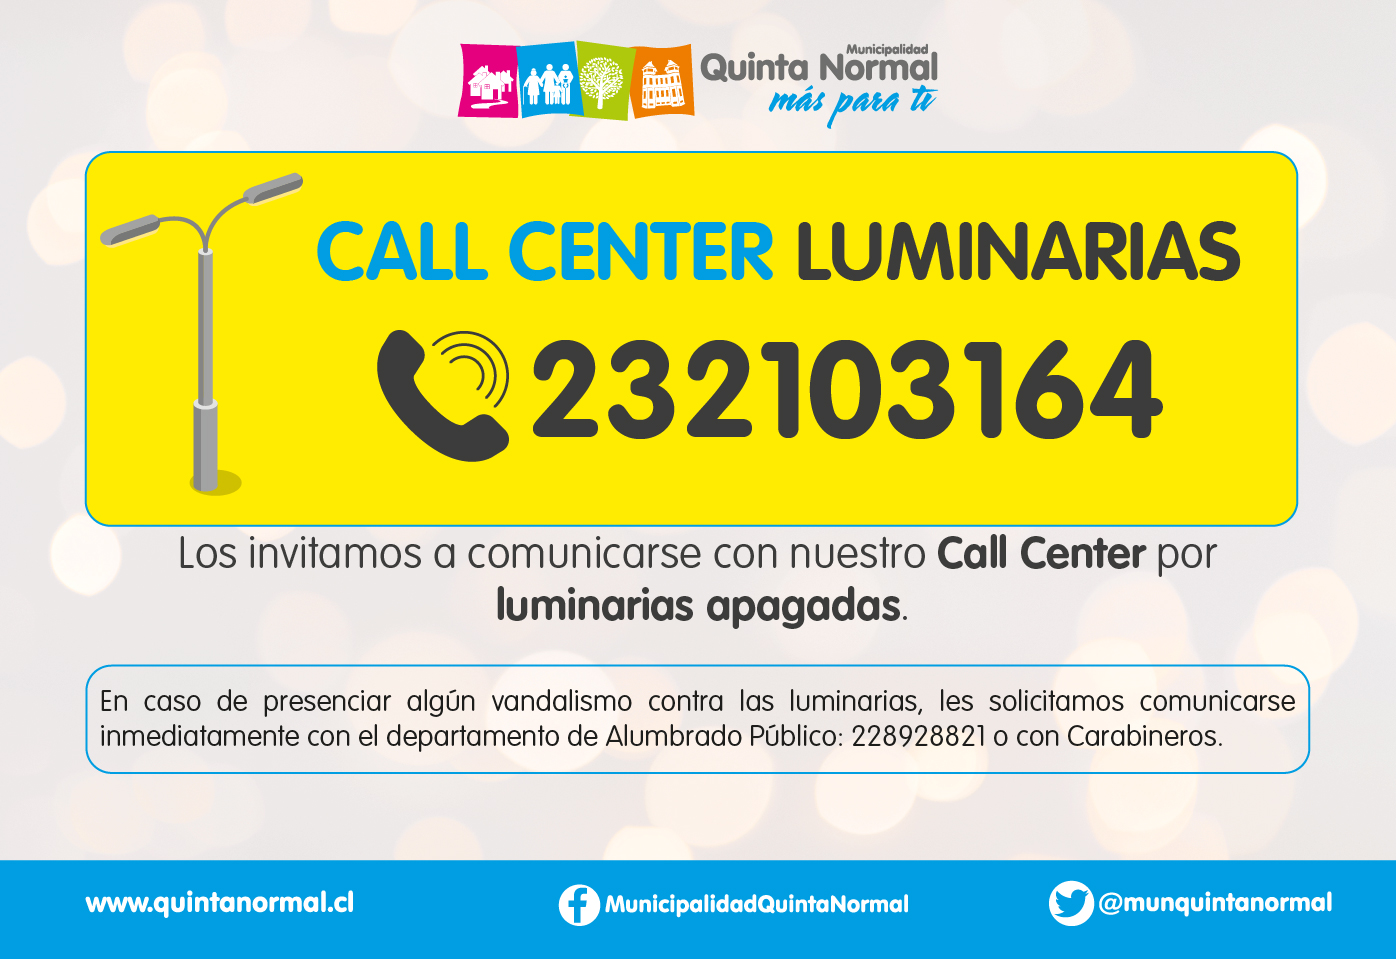 Call Center Luminarias